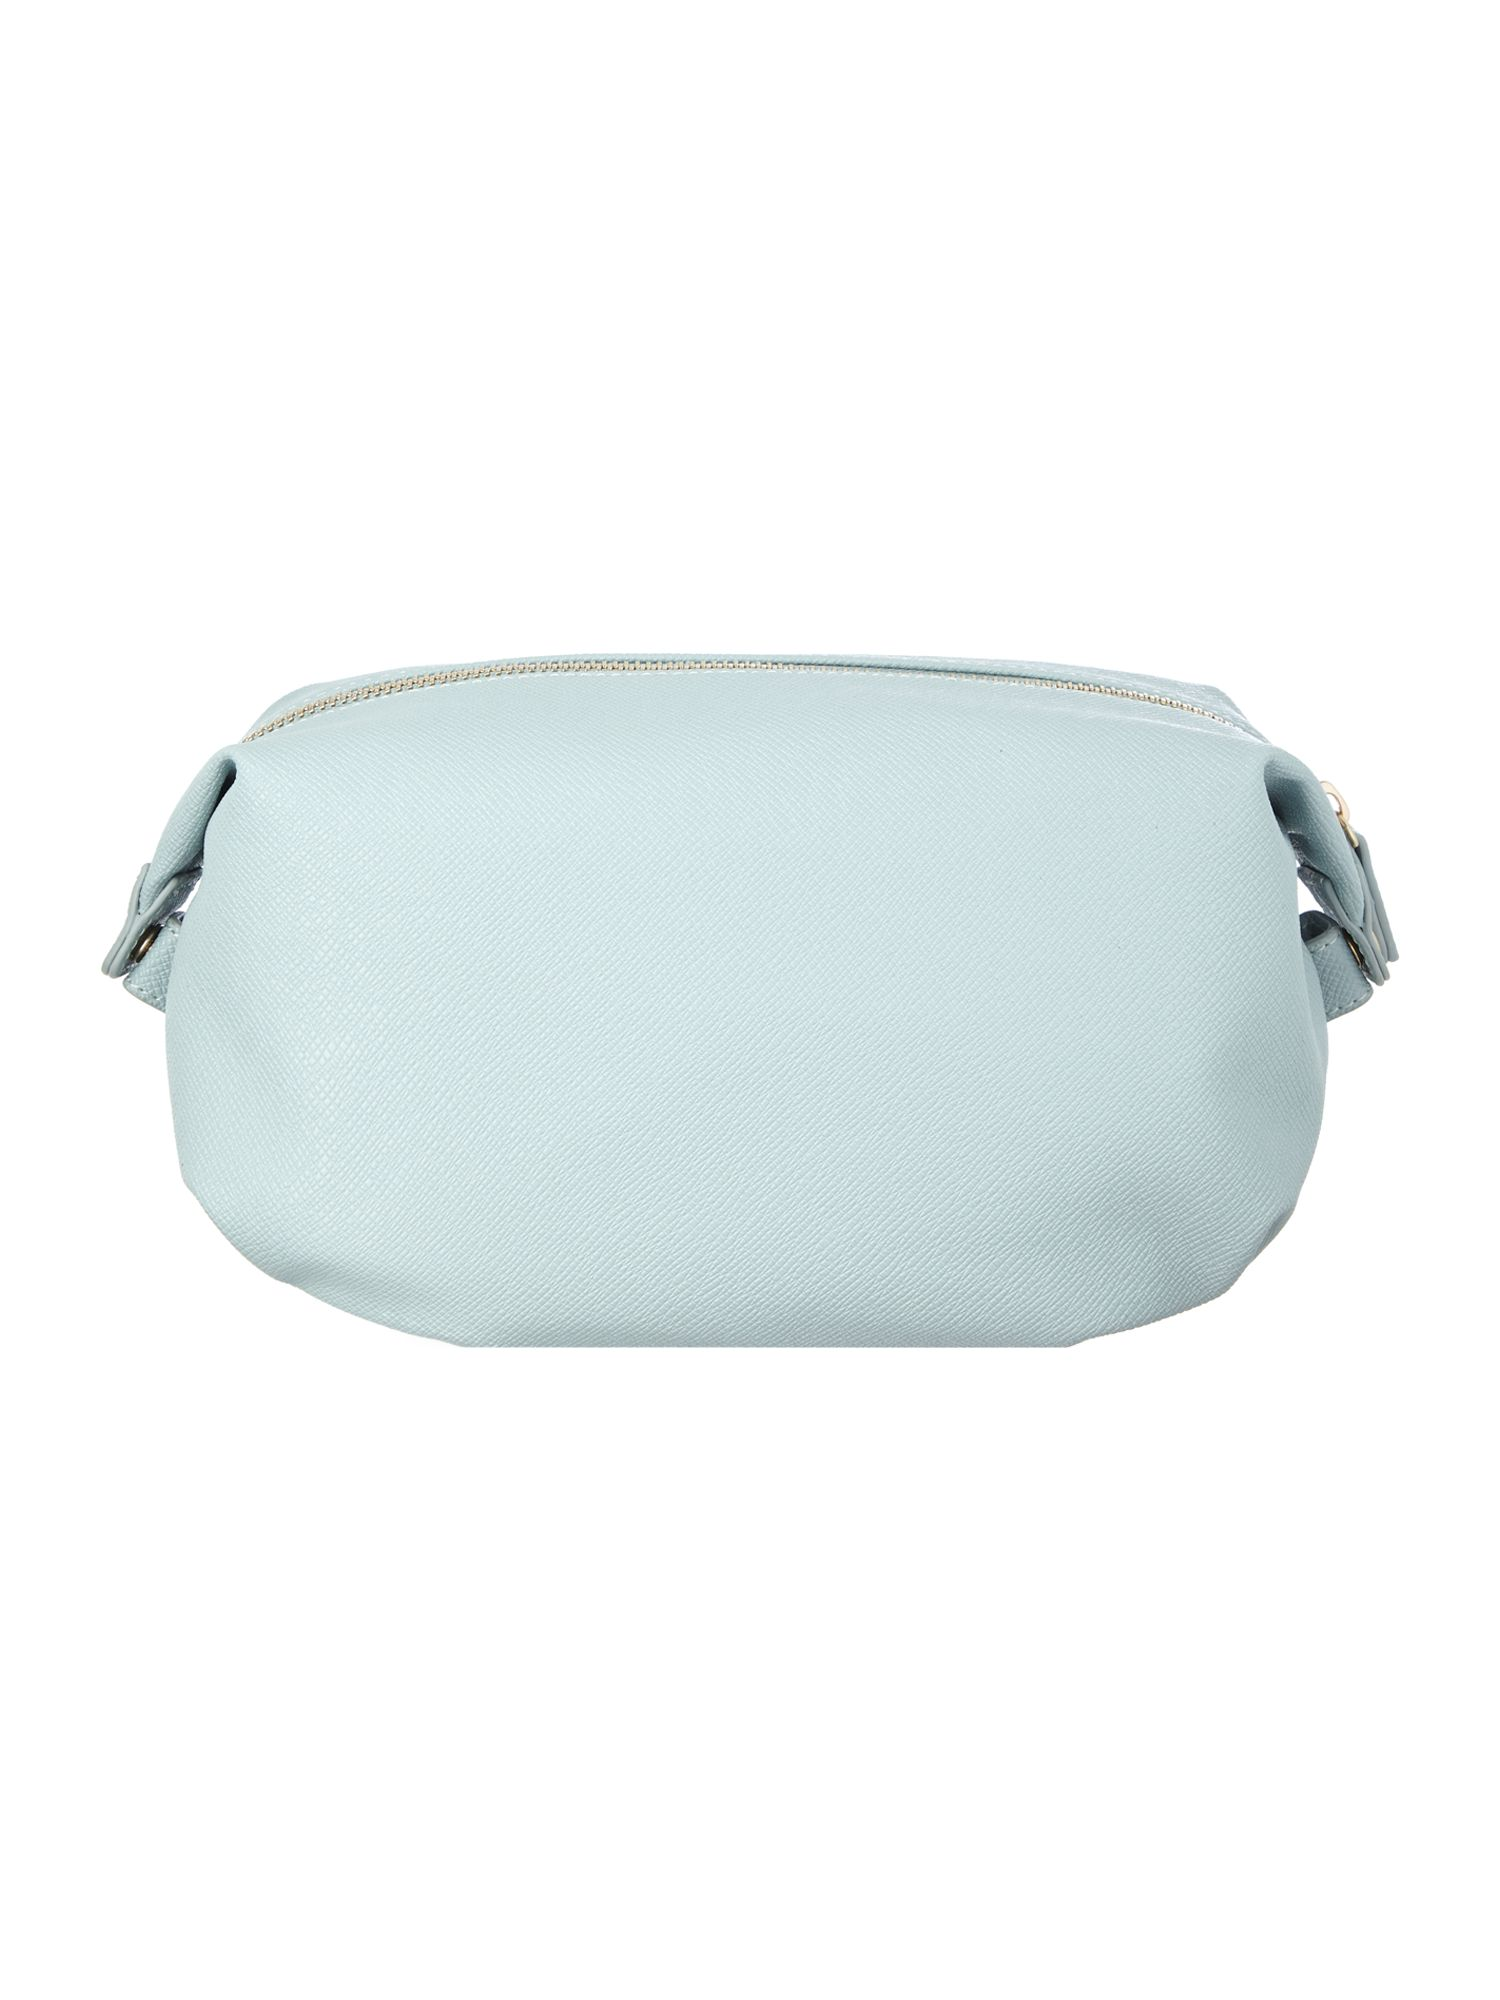 Anna blue cosmetic bag